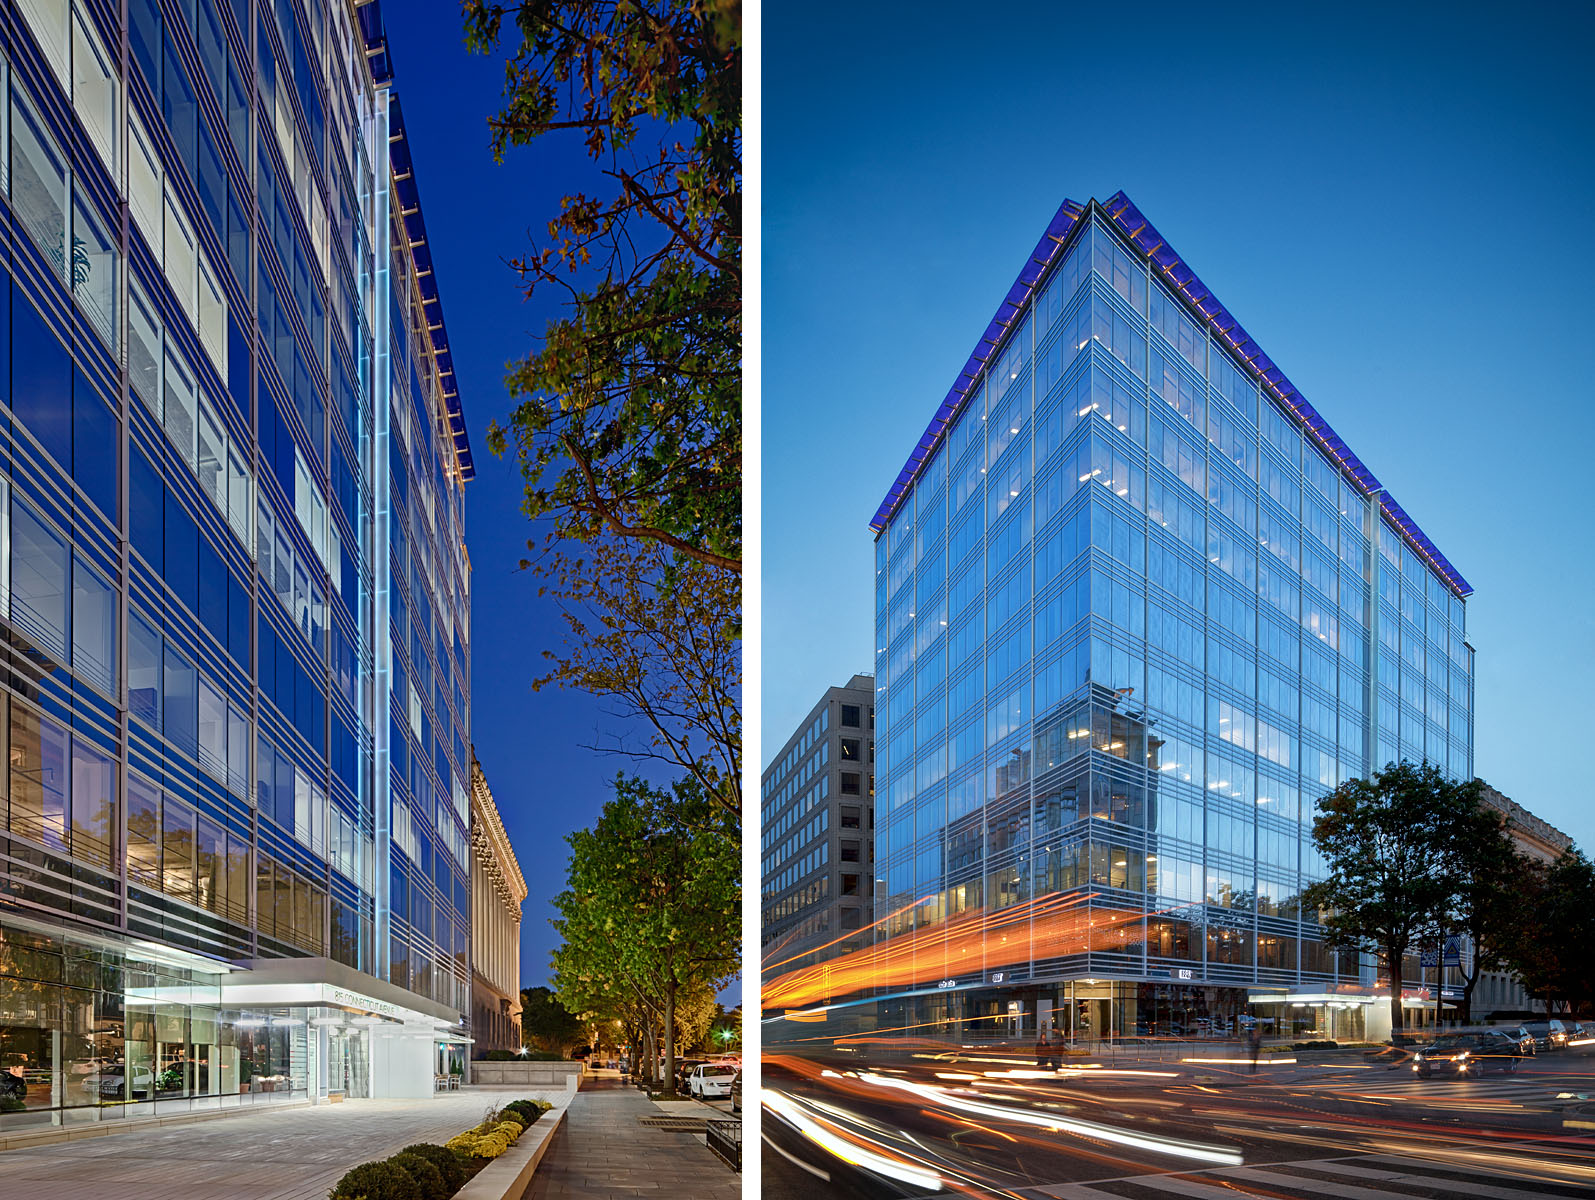 815 Connecticut Avenue, NW Washington, DCVOA Associates